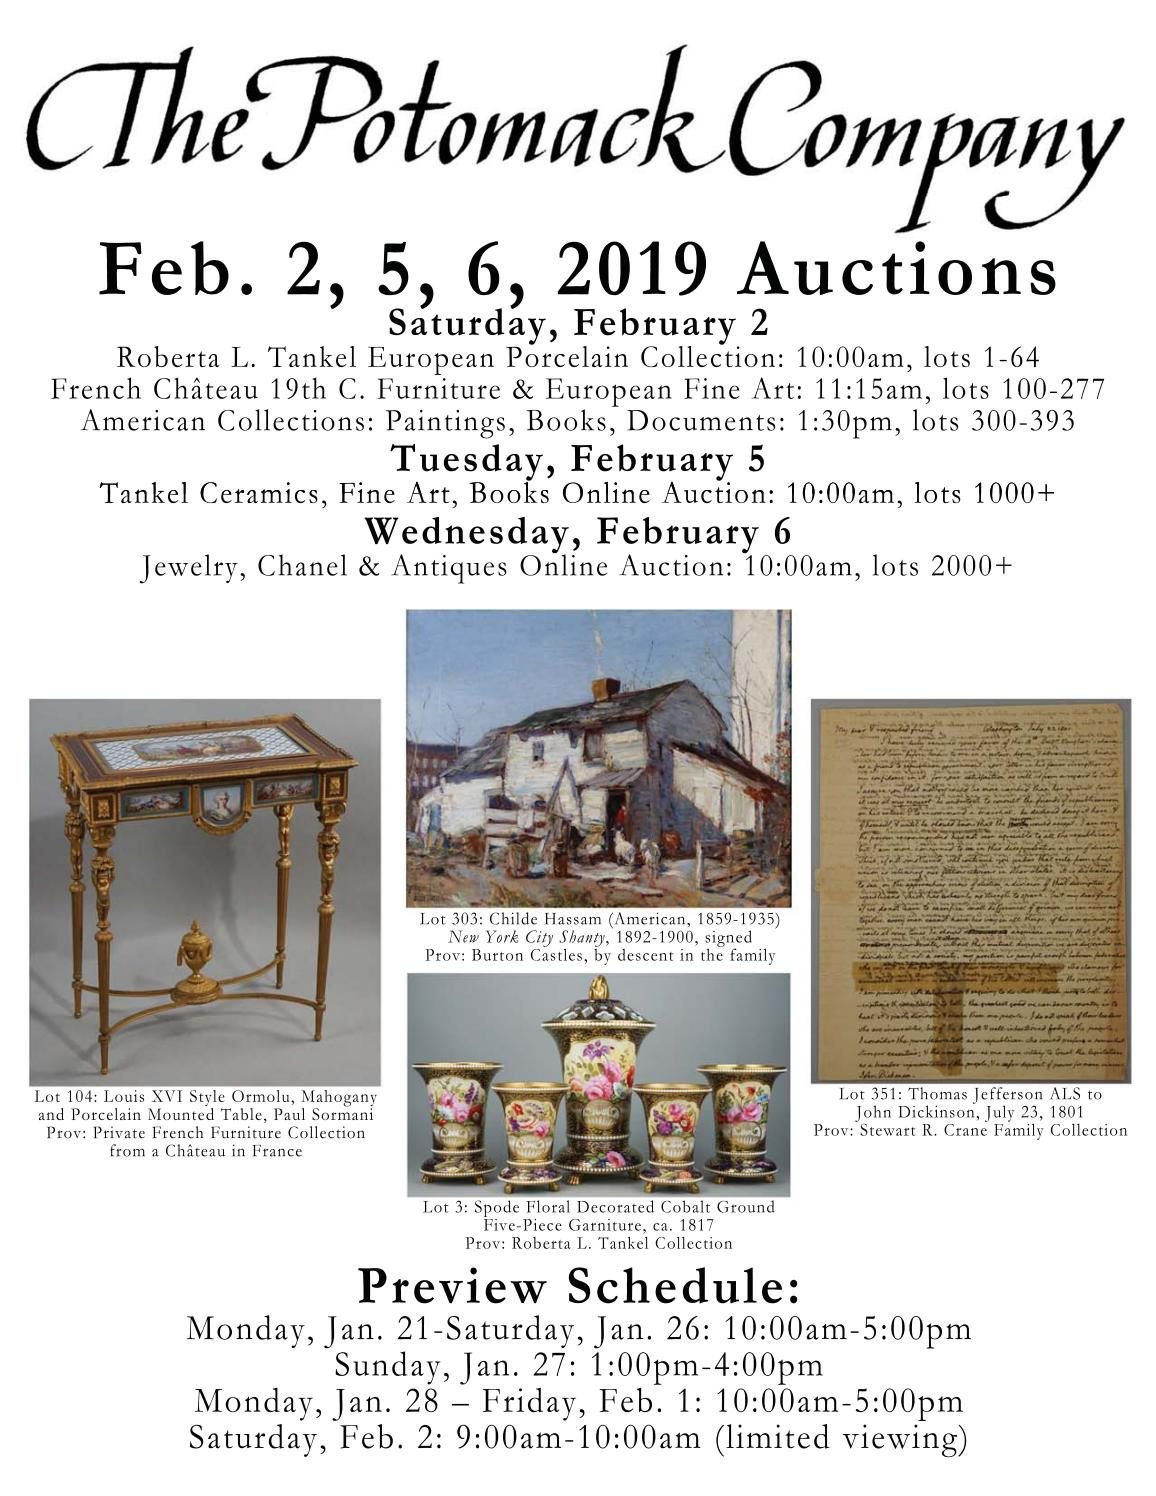 279d83fef81eb Potomack Co. Feb. 2, 5, 6 Auctions Catalogue by The Potomack Company - issuu